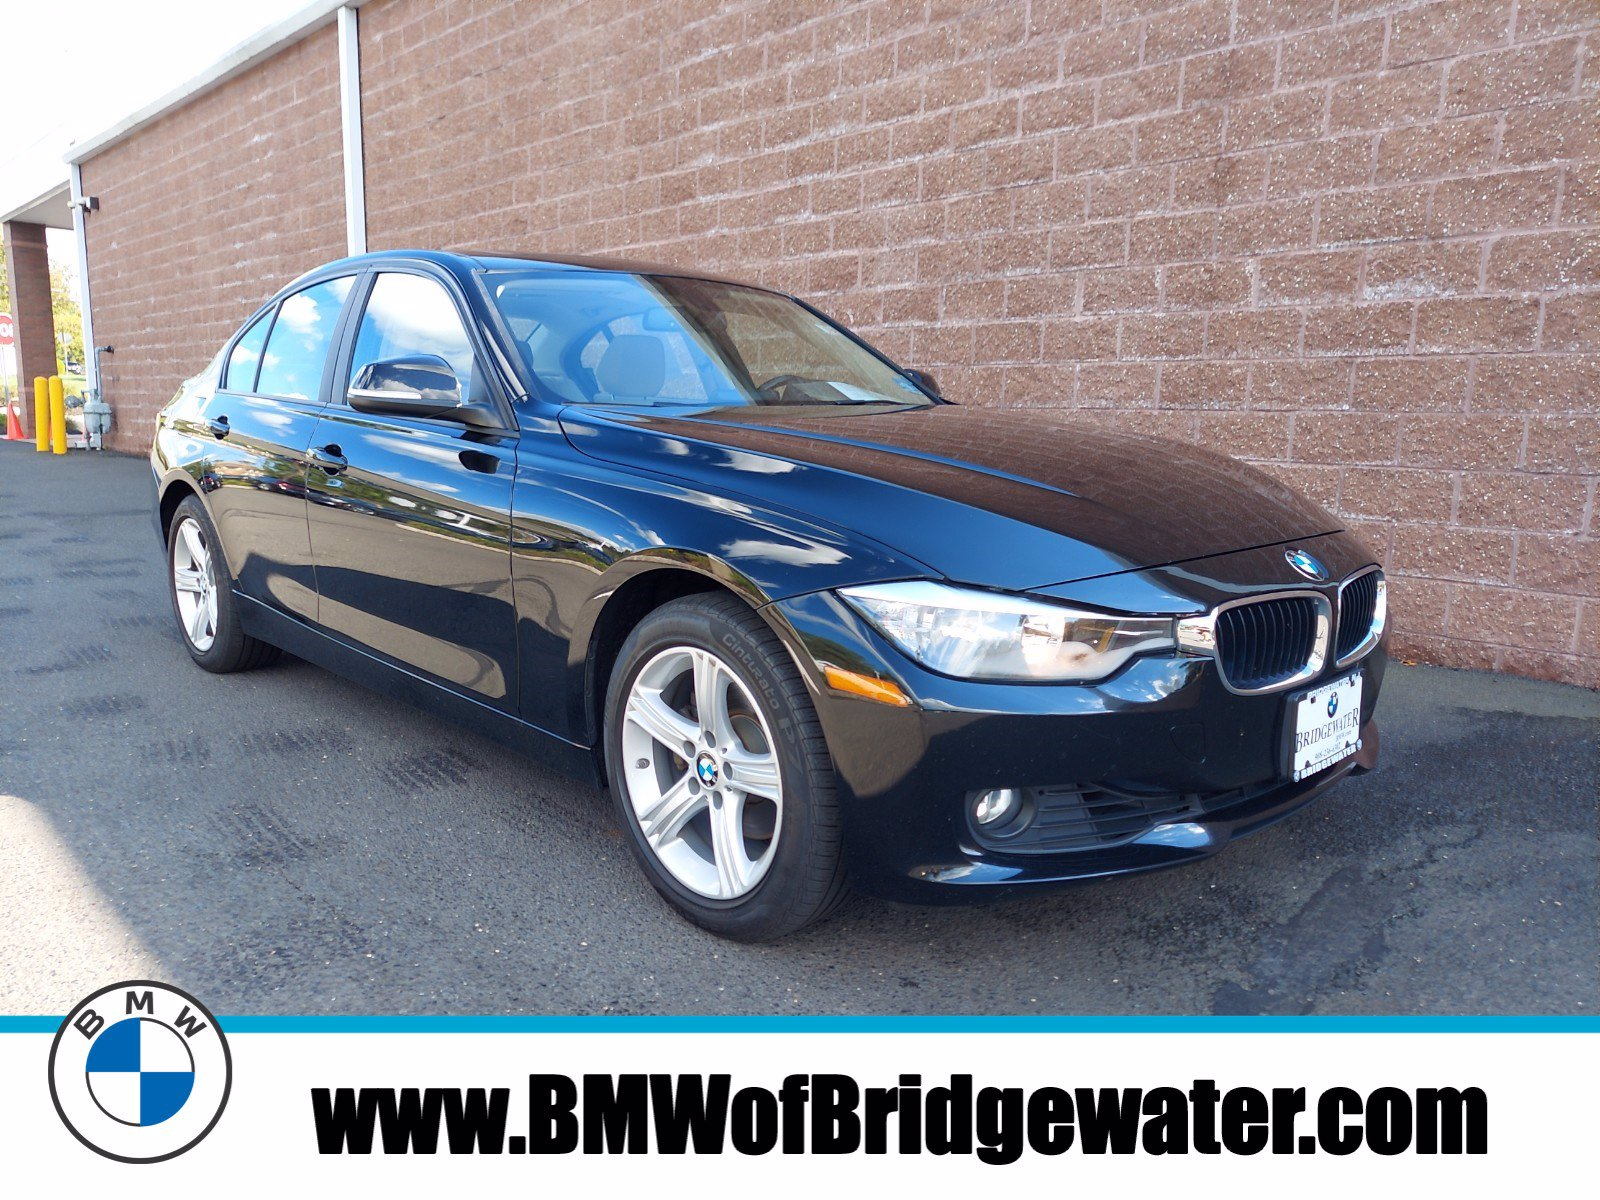 Pre Owned 2013 Bmw 328i Xdrive For Sale At Bmw Of Bridgewater Vin Wba3b5g55dns04157